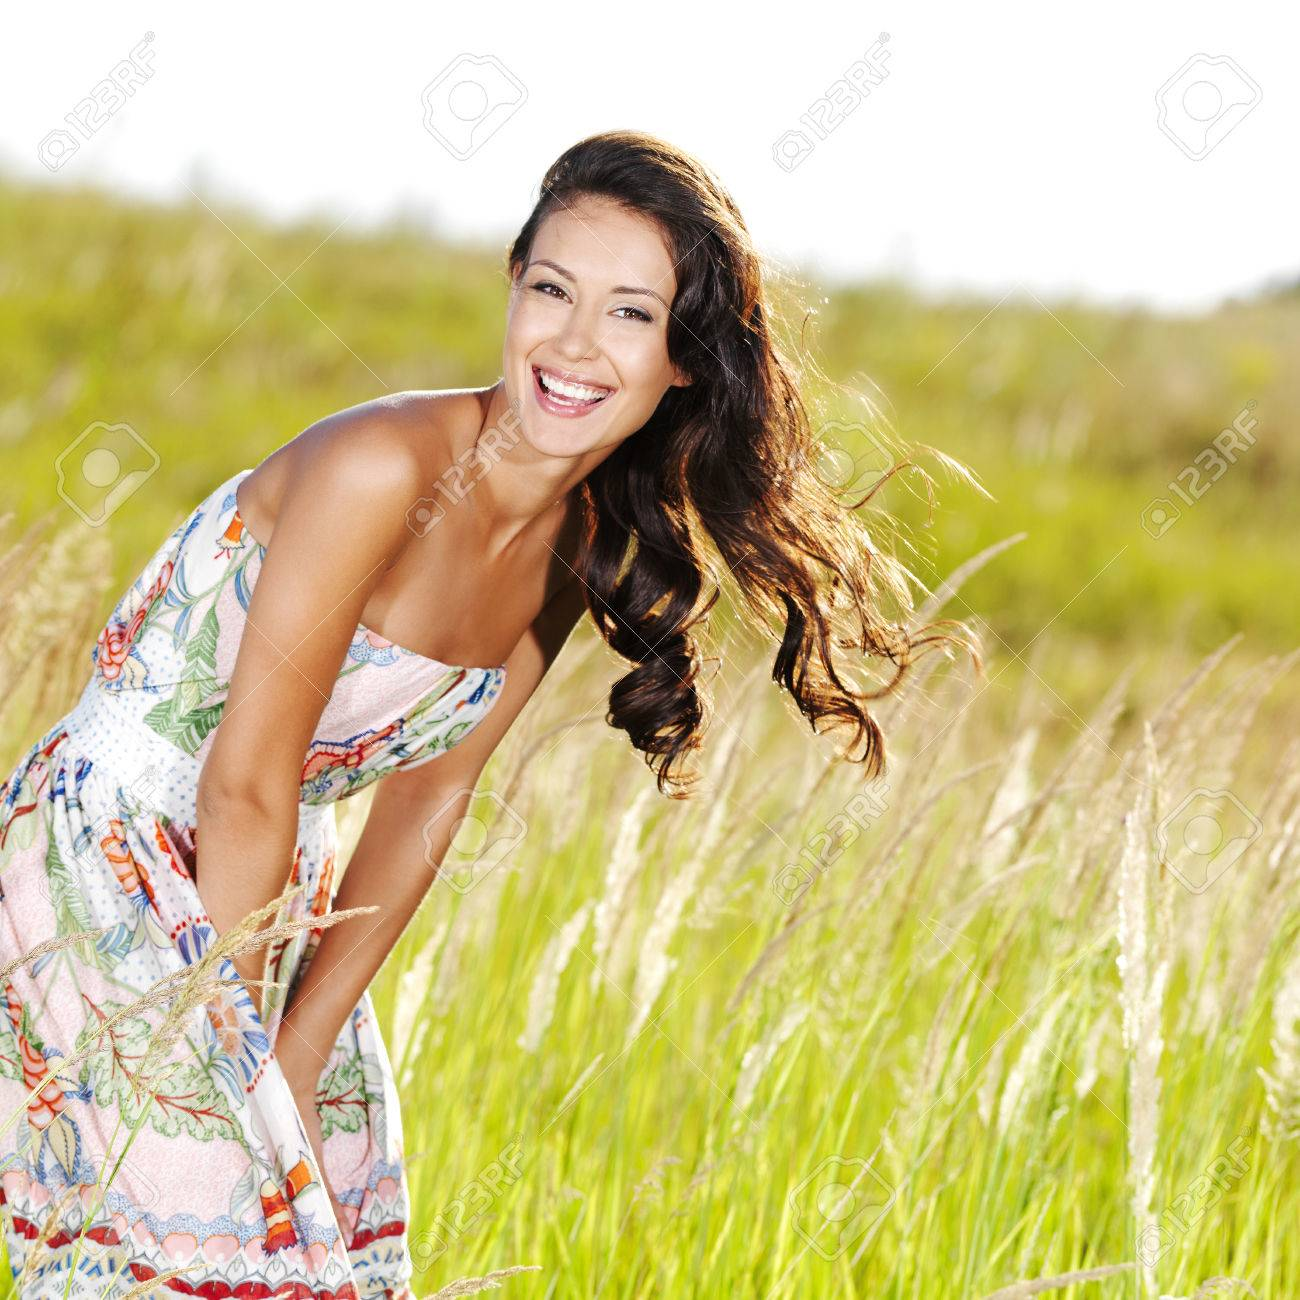 Portrait of the young beautiful smiling woman outdoors Stock Photo - 53558592